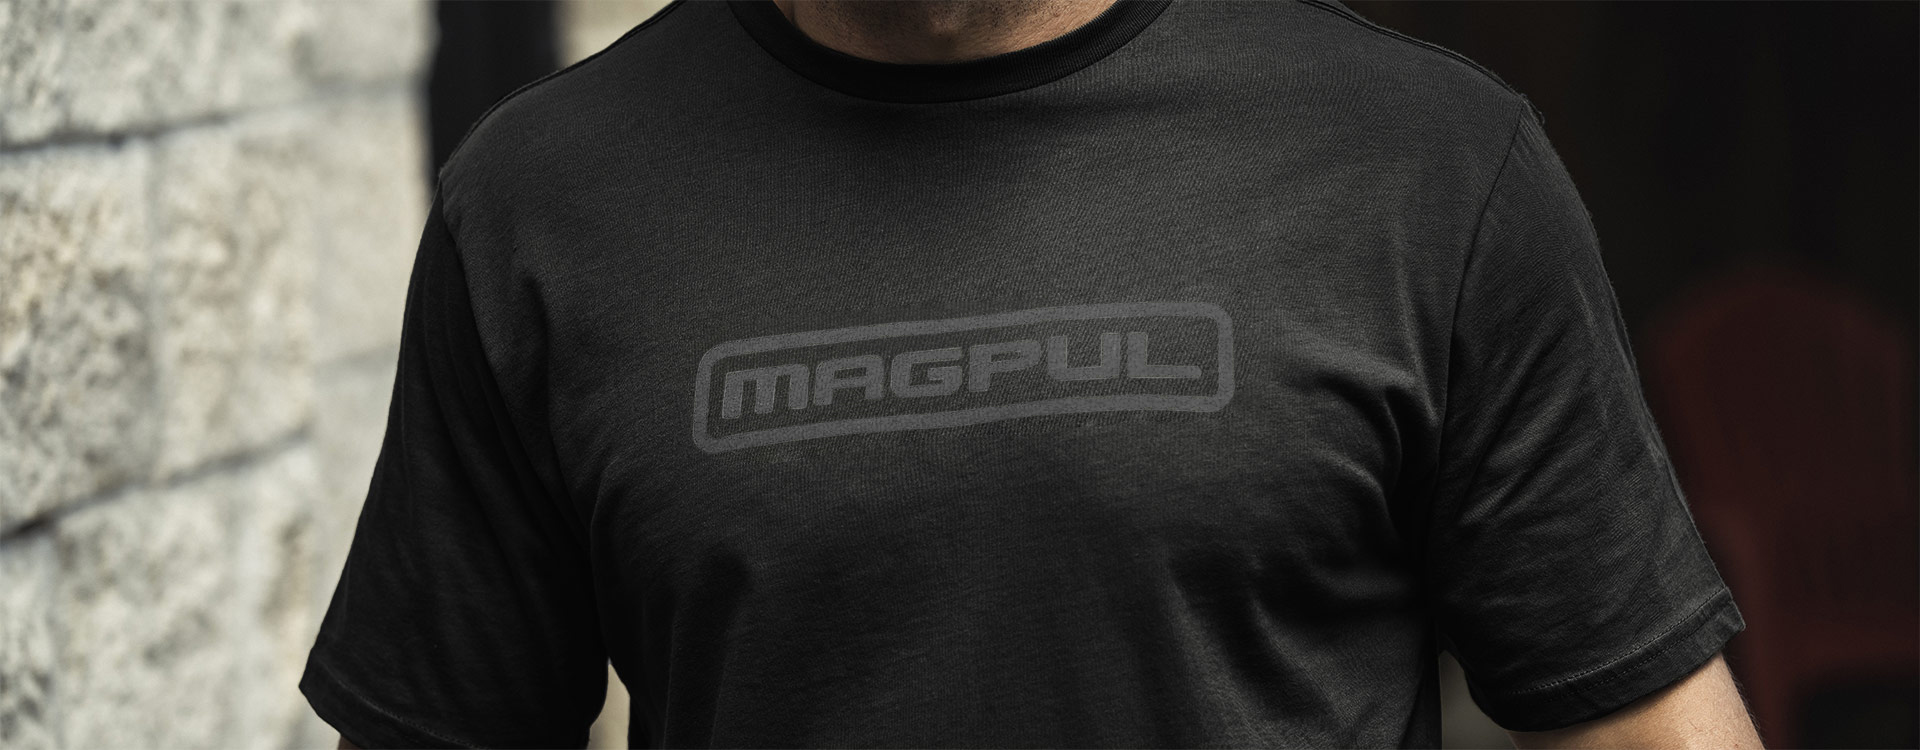 Magpul Wordmark Logo T-Shirt worn by an unidentifiable man with a blurred stone wall in background